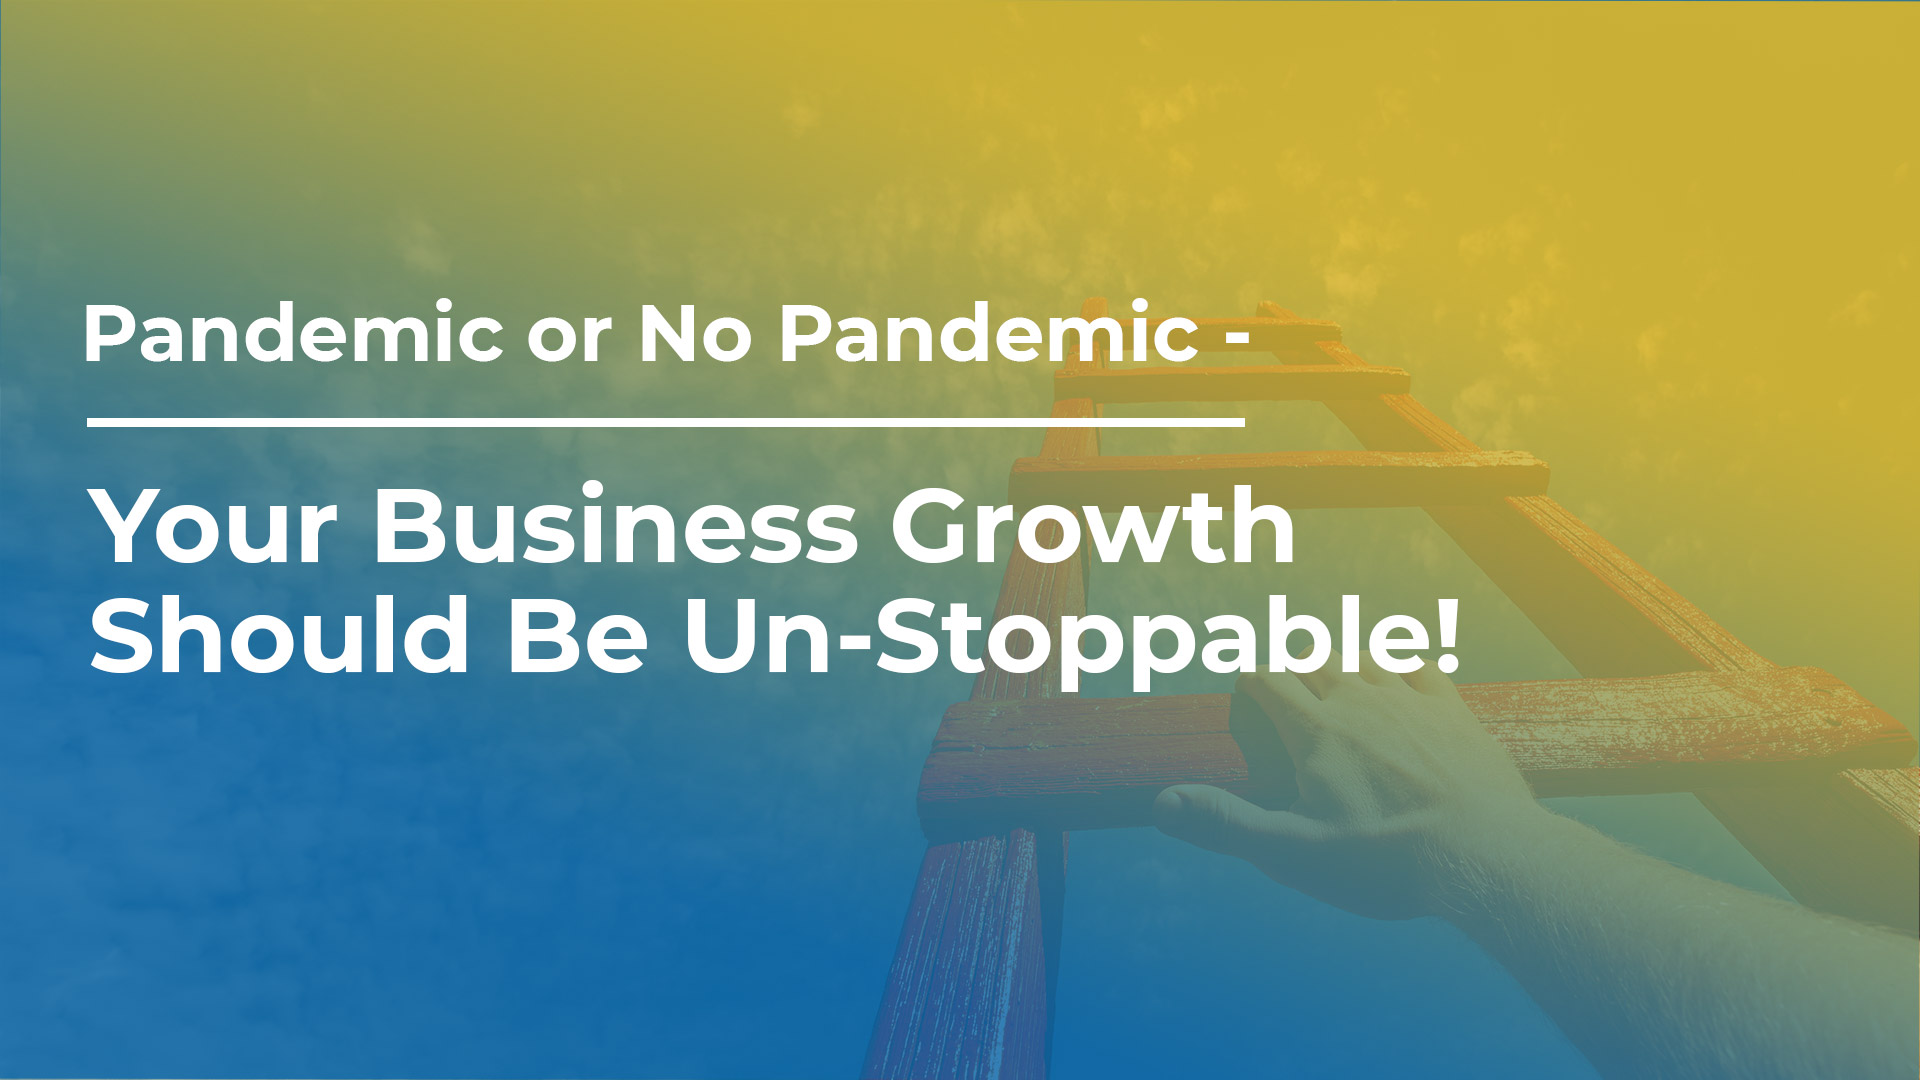 Your Business Growth Should Be Unstoppable